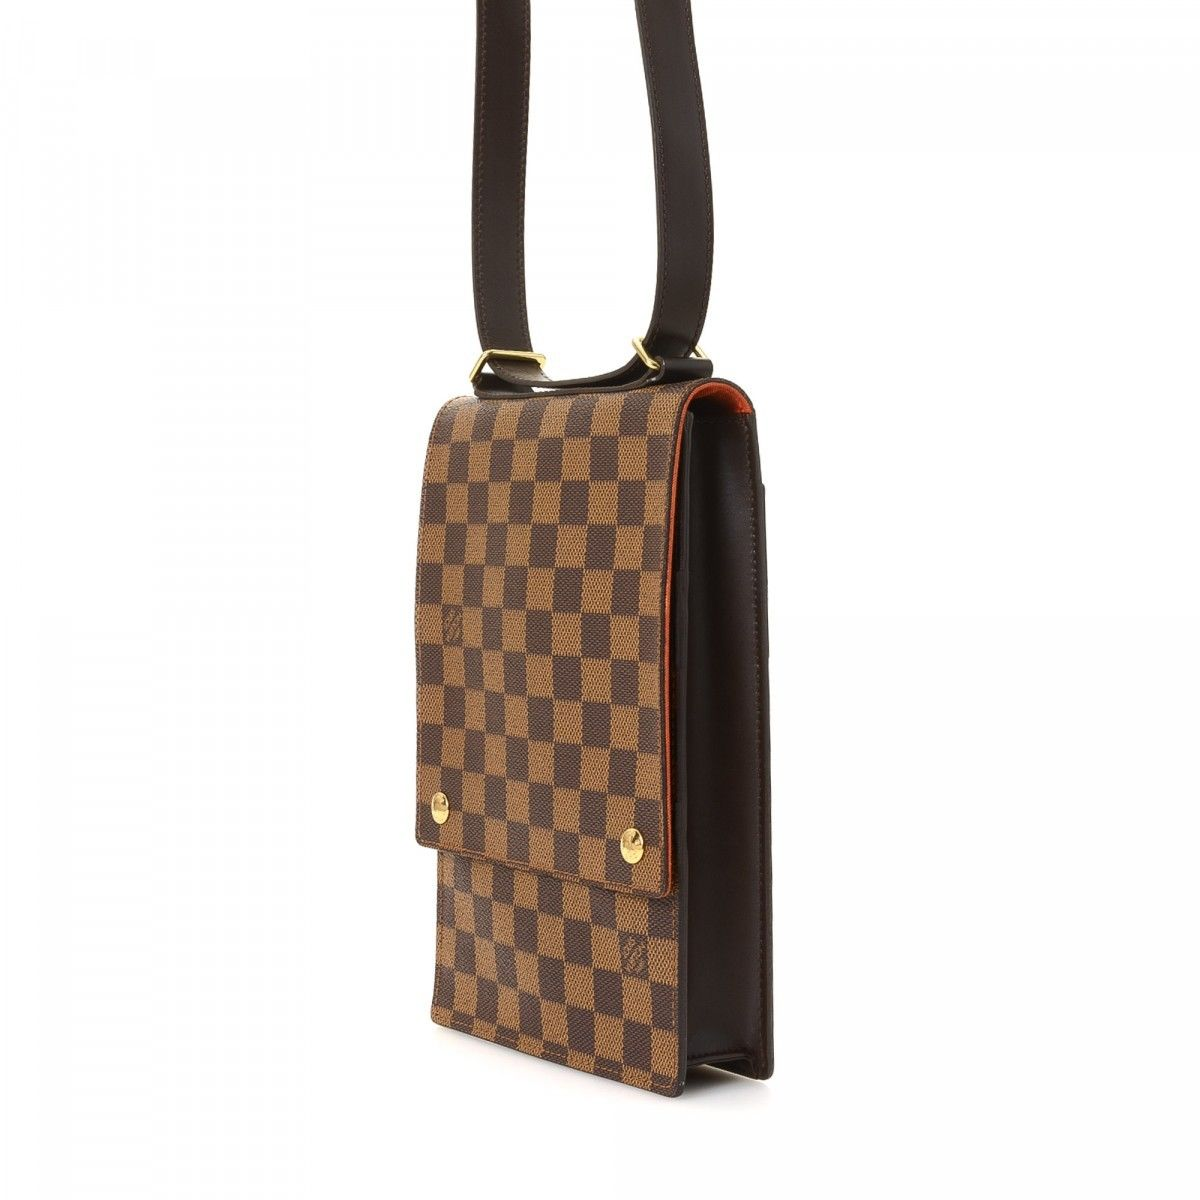 3e27503695be Louis Vuitton Portobello Crossbody Damier Ebene Coated Canvas ...